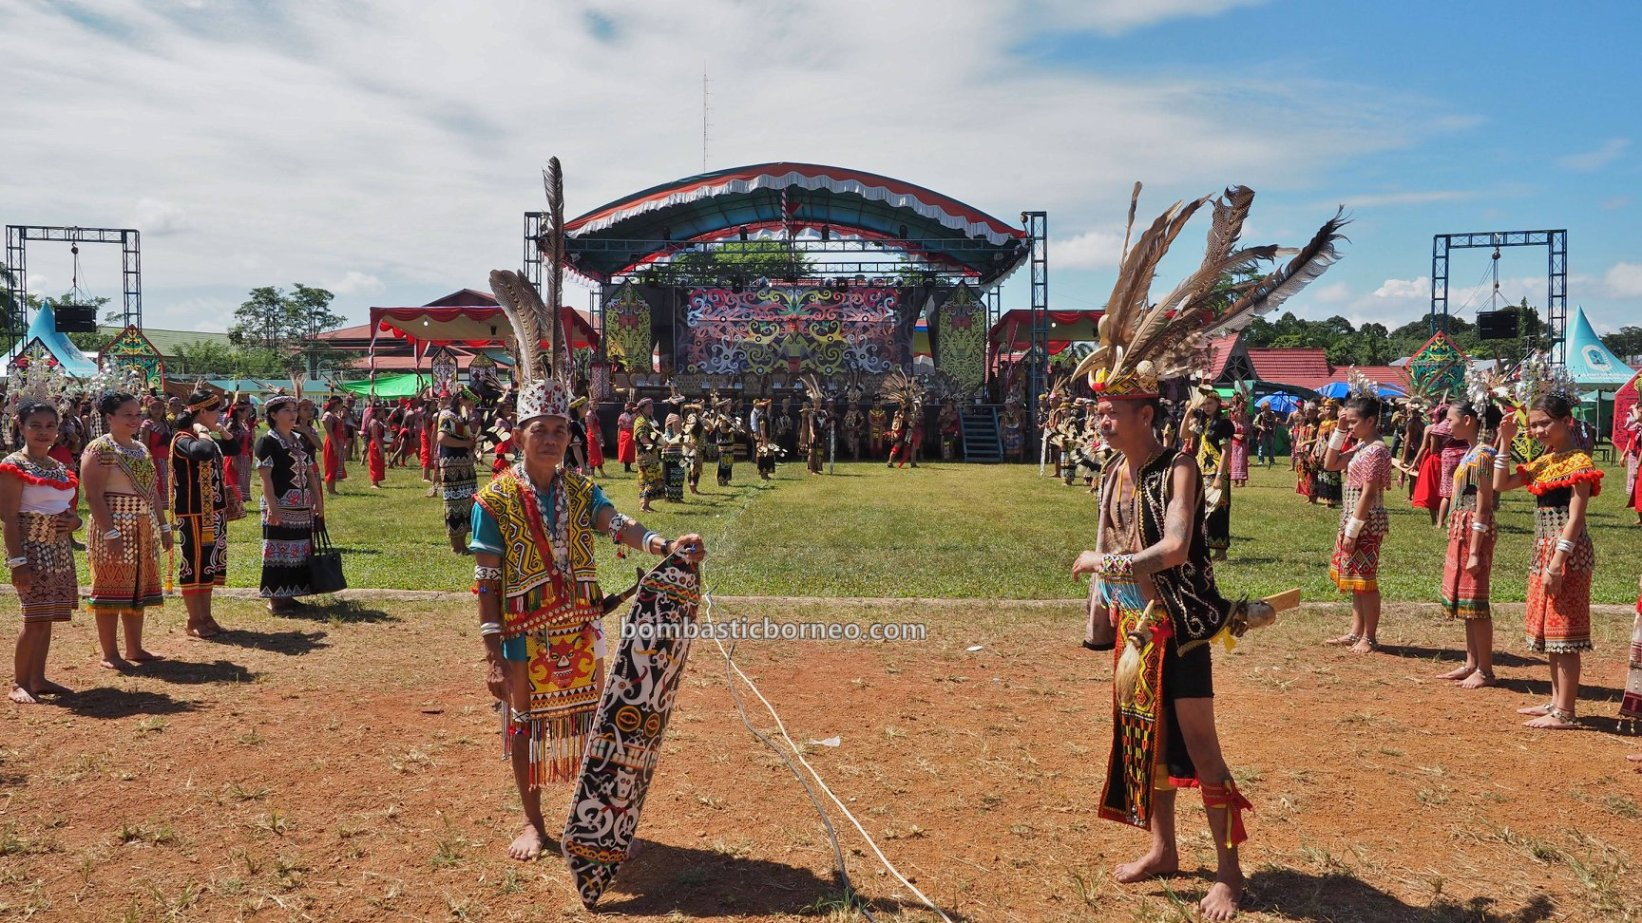 Kapuas Hulu, Paddy harvest festival, budaya, Indonesia, backpackers, Ethnic, indigenous, native, Obyek wisata, Tourism, travel guide, Cross Border, 跨境婆罗洲游踪, 印尼西加里曼丹, 富都土著文化旅游